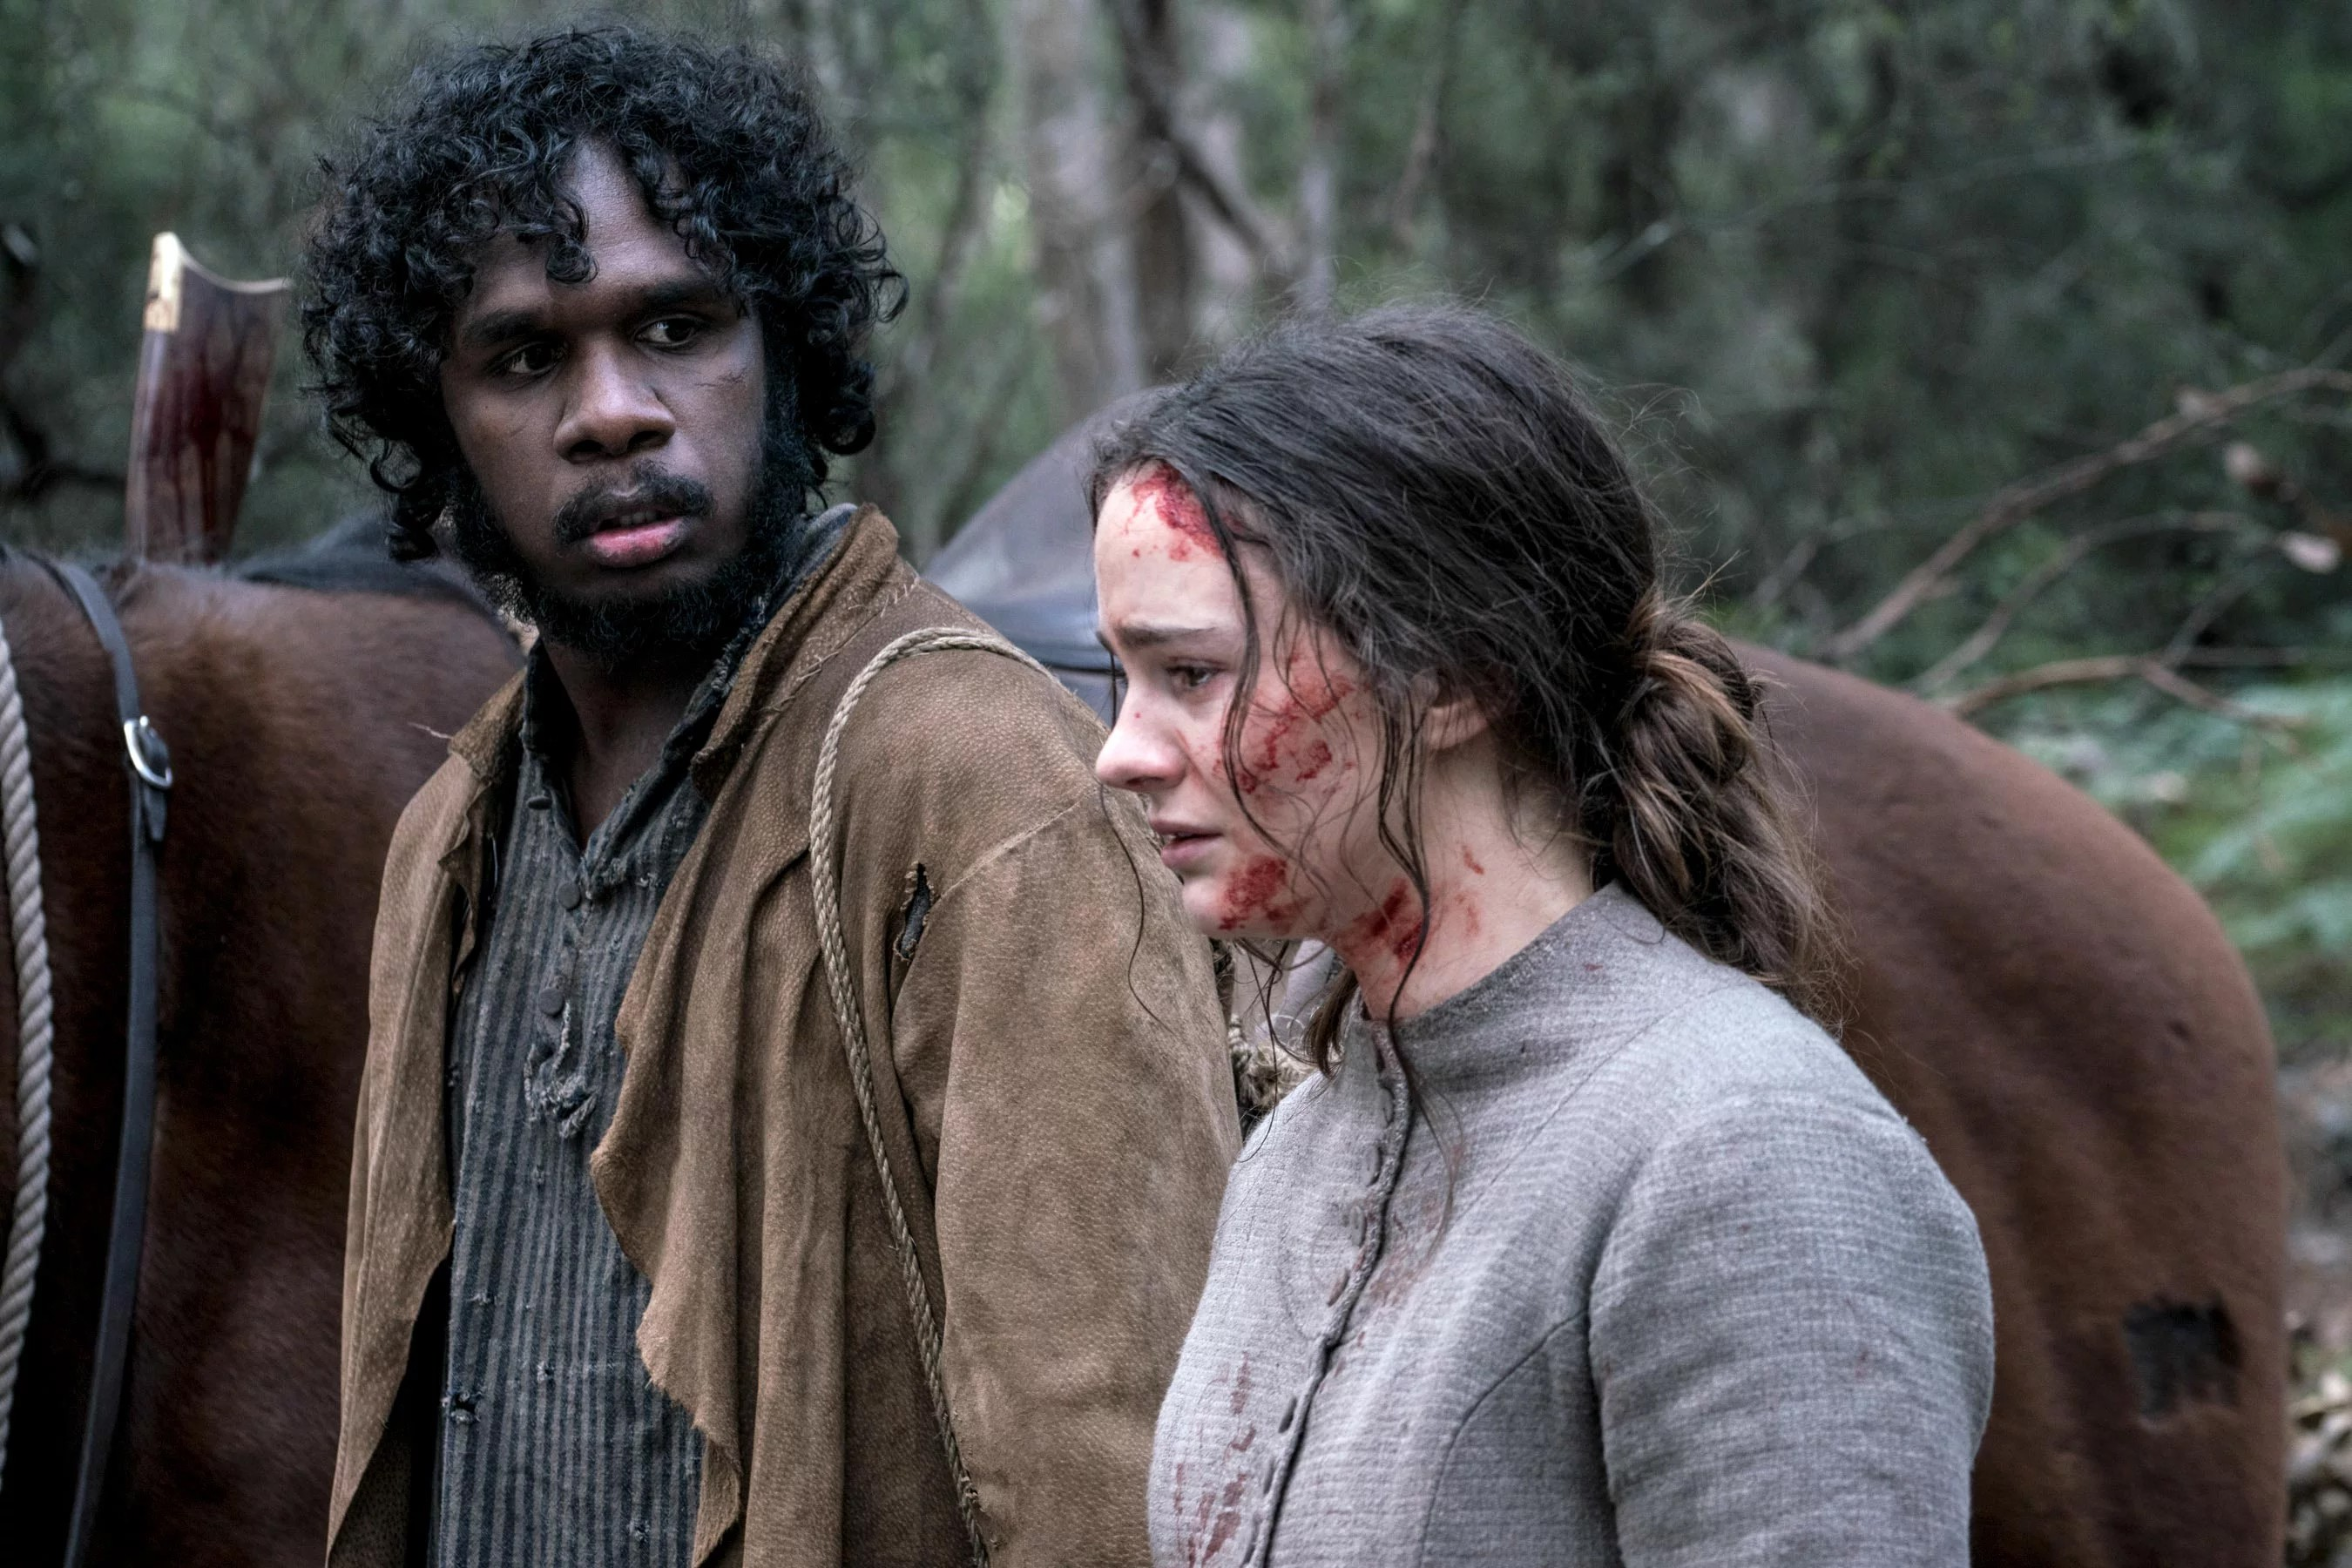 Death Becomes Her: The Nightingale Delivers a Devastatingly Grim Revenge Tale Set in Early 19th Century Australia